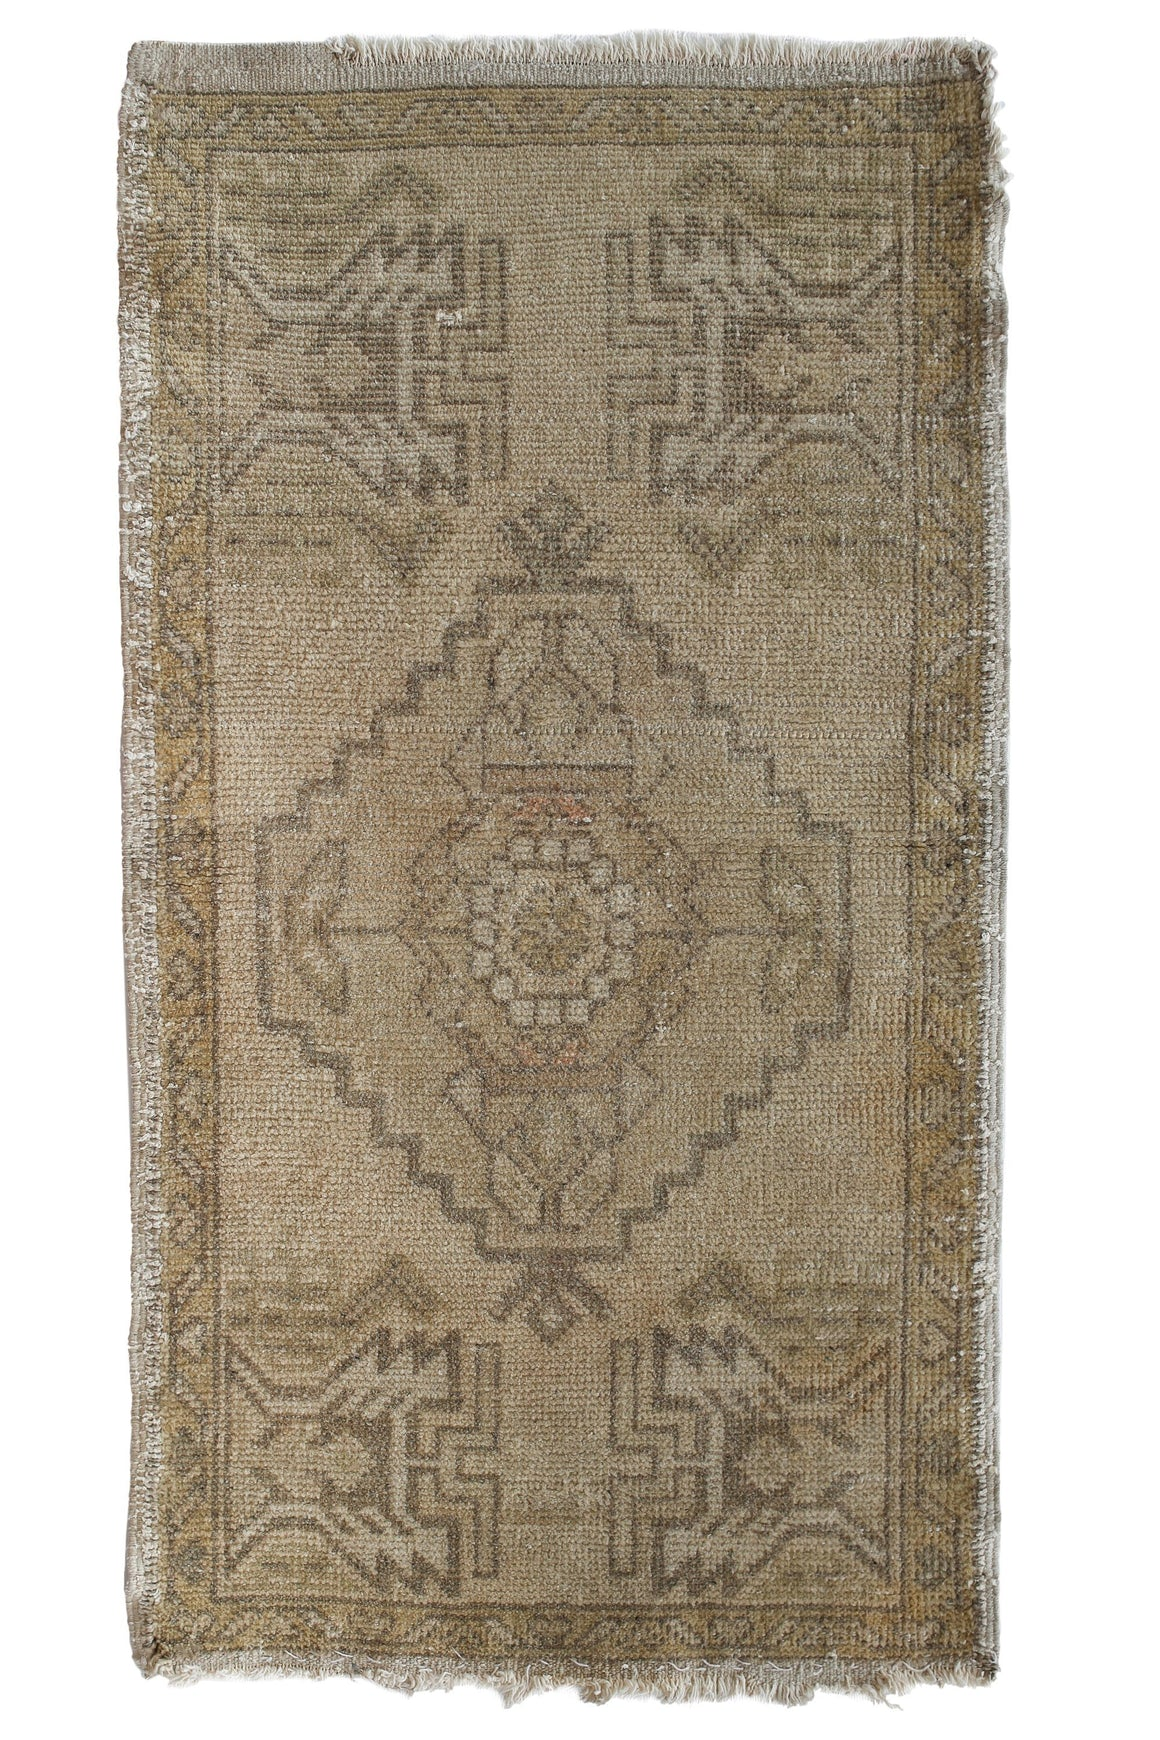 No. 341 Neutral Petite Rug - Canary Lane - Curated Textiles